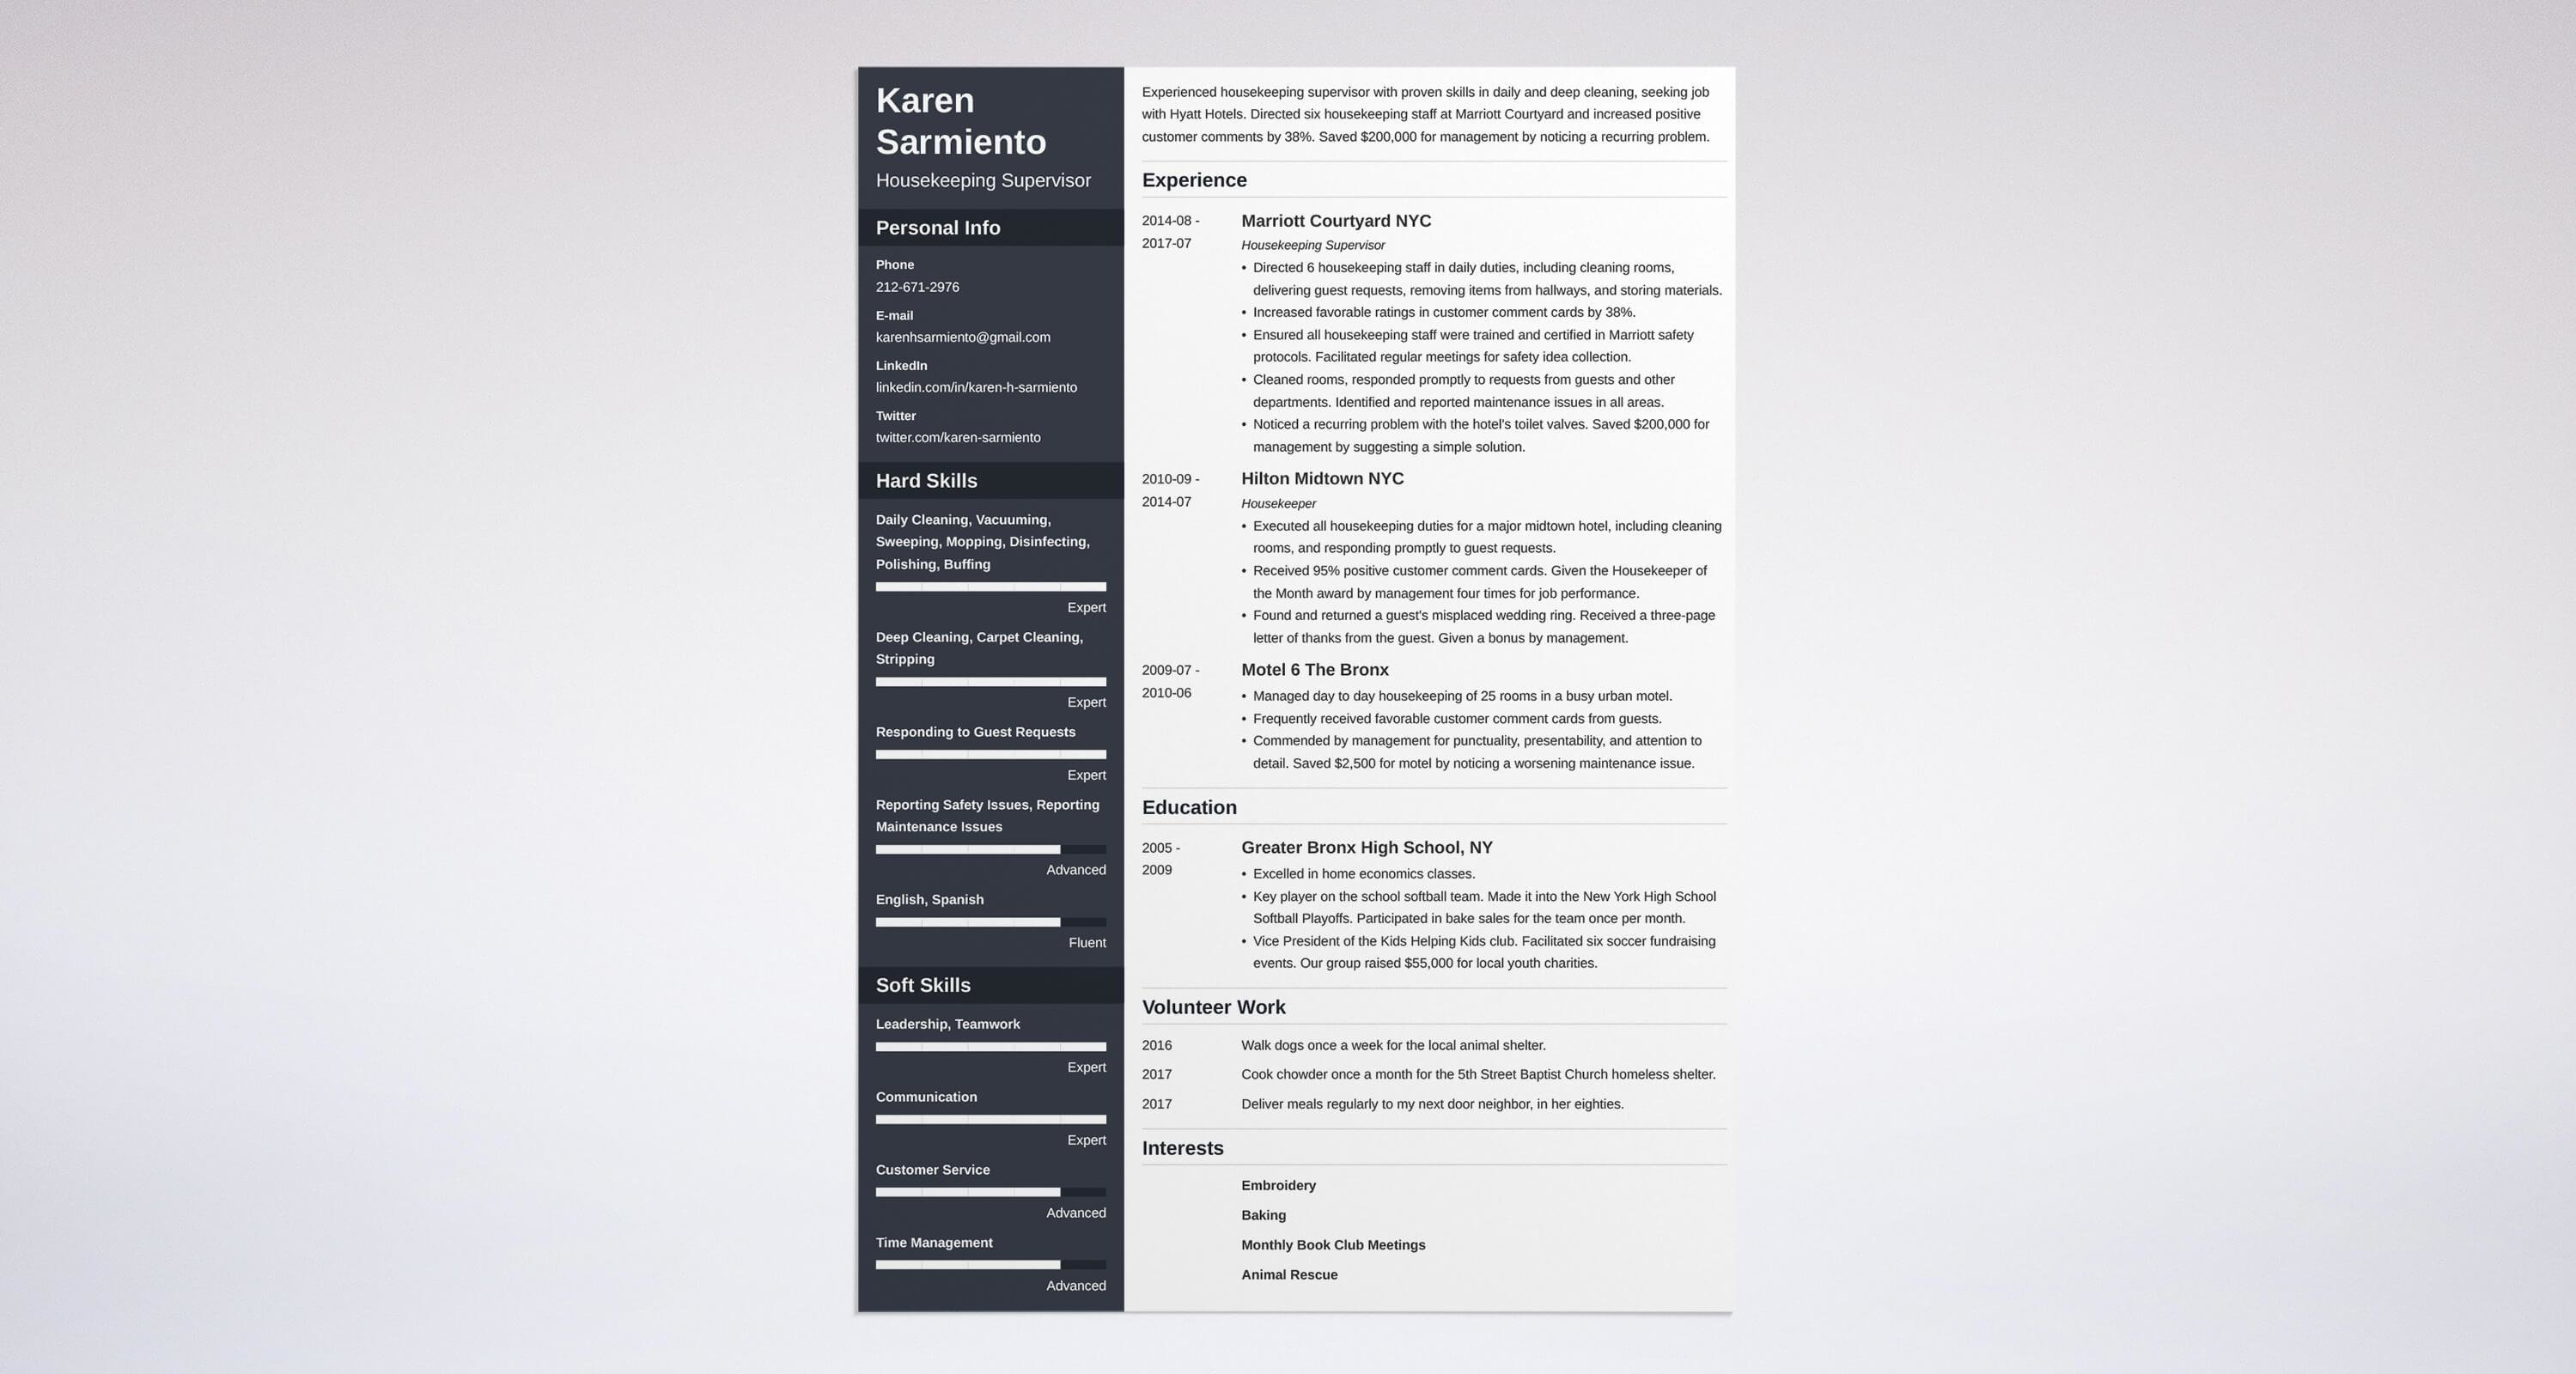 Equipment Operator Resume Word Housekeeping Resume Sample  Complete Guide  Examples How To Write A Cover Letter For A Resume Excel with What Are Skills On A Resume Word Whats The Best Format For A Housekeeping Resume Free Resume Download Template